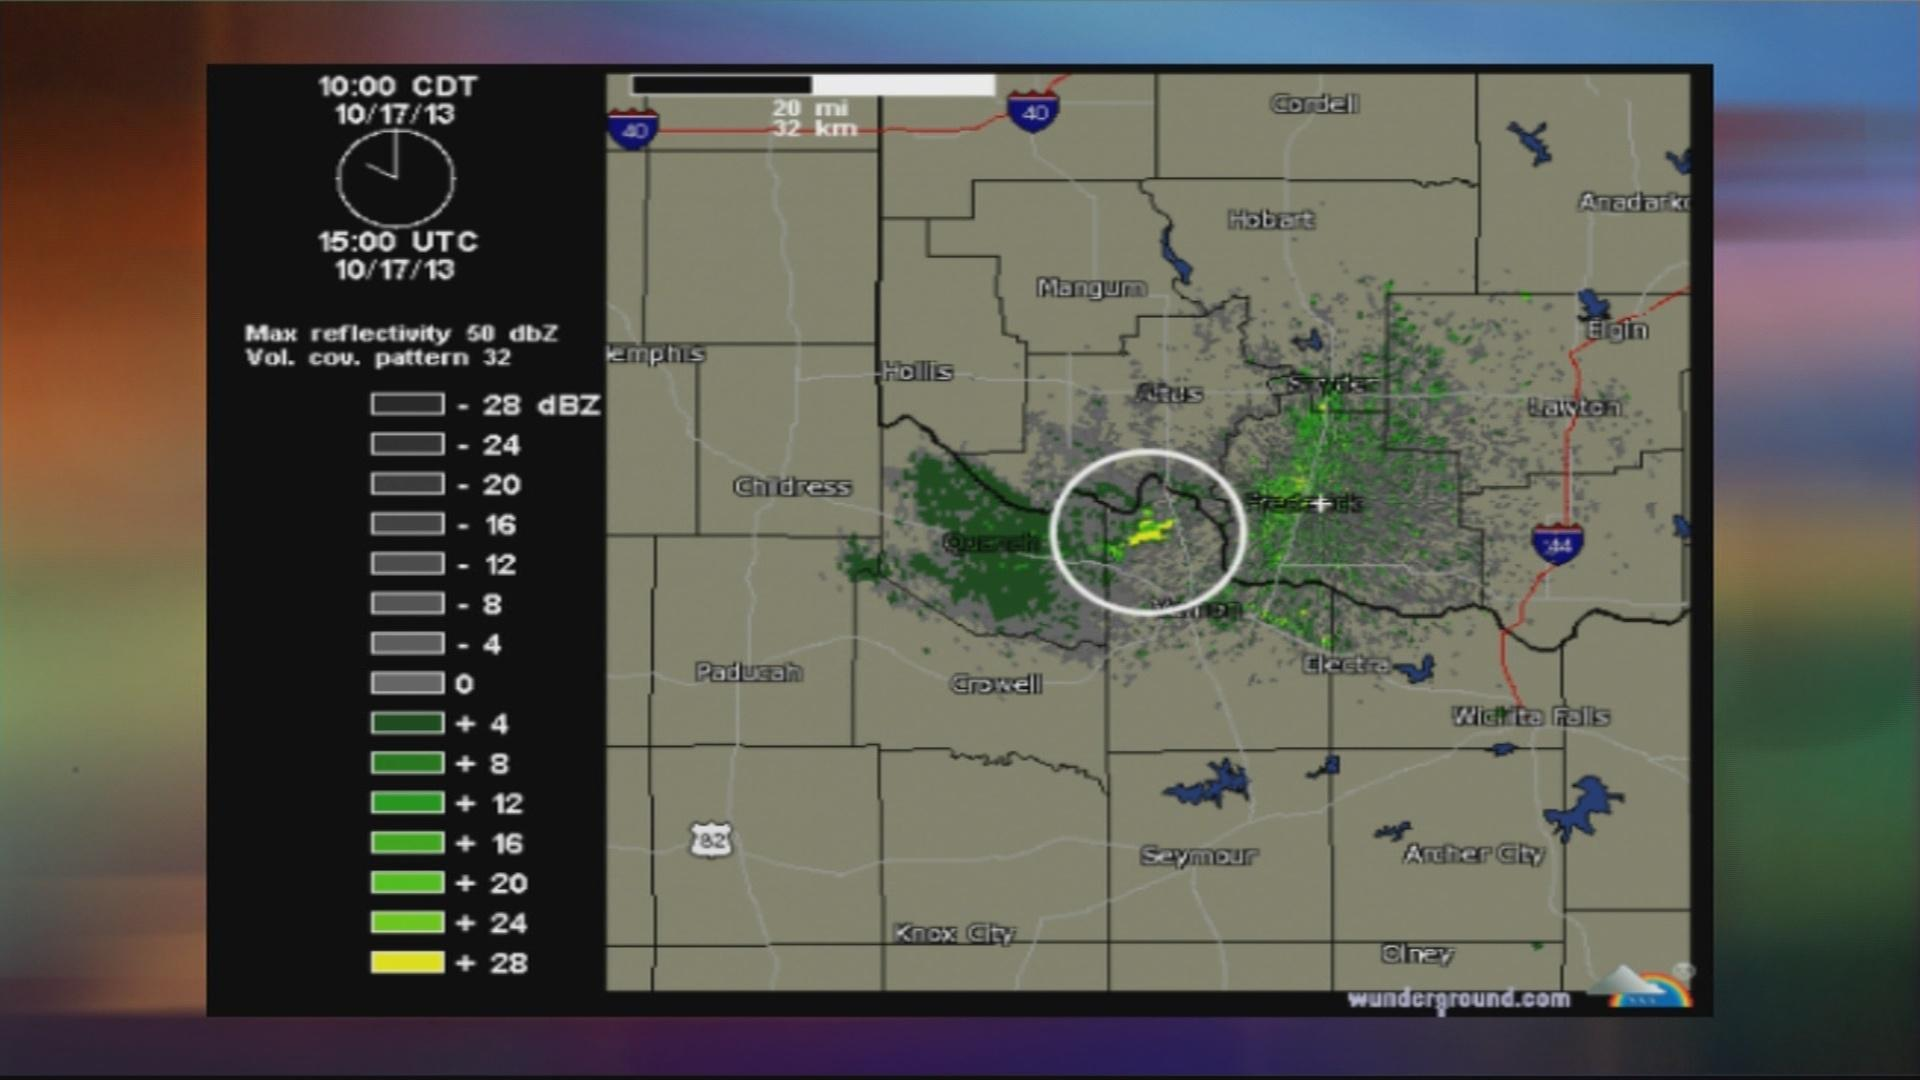 Video stateimpact wind farms weather radar watch onr for Oeta schedule